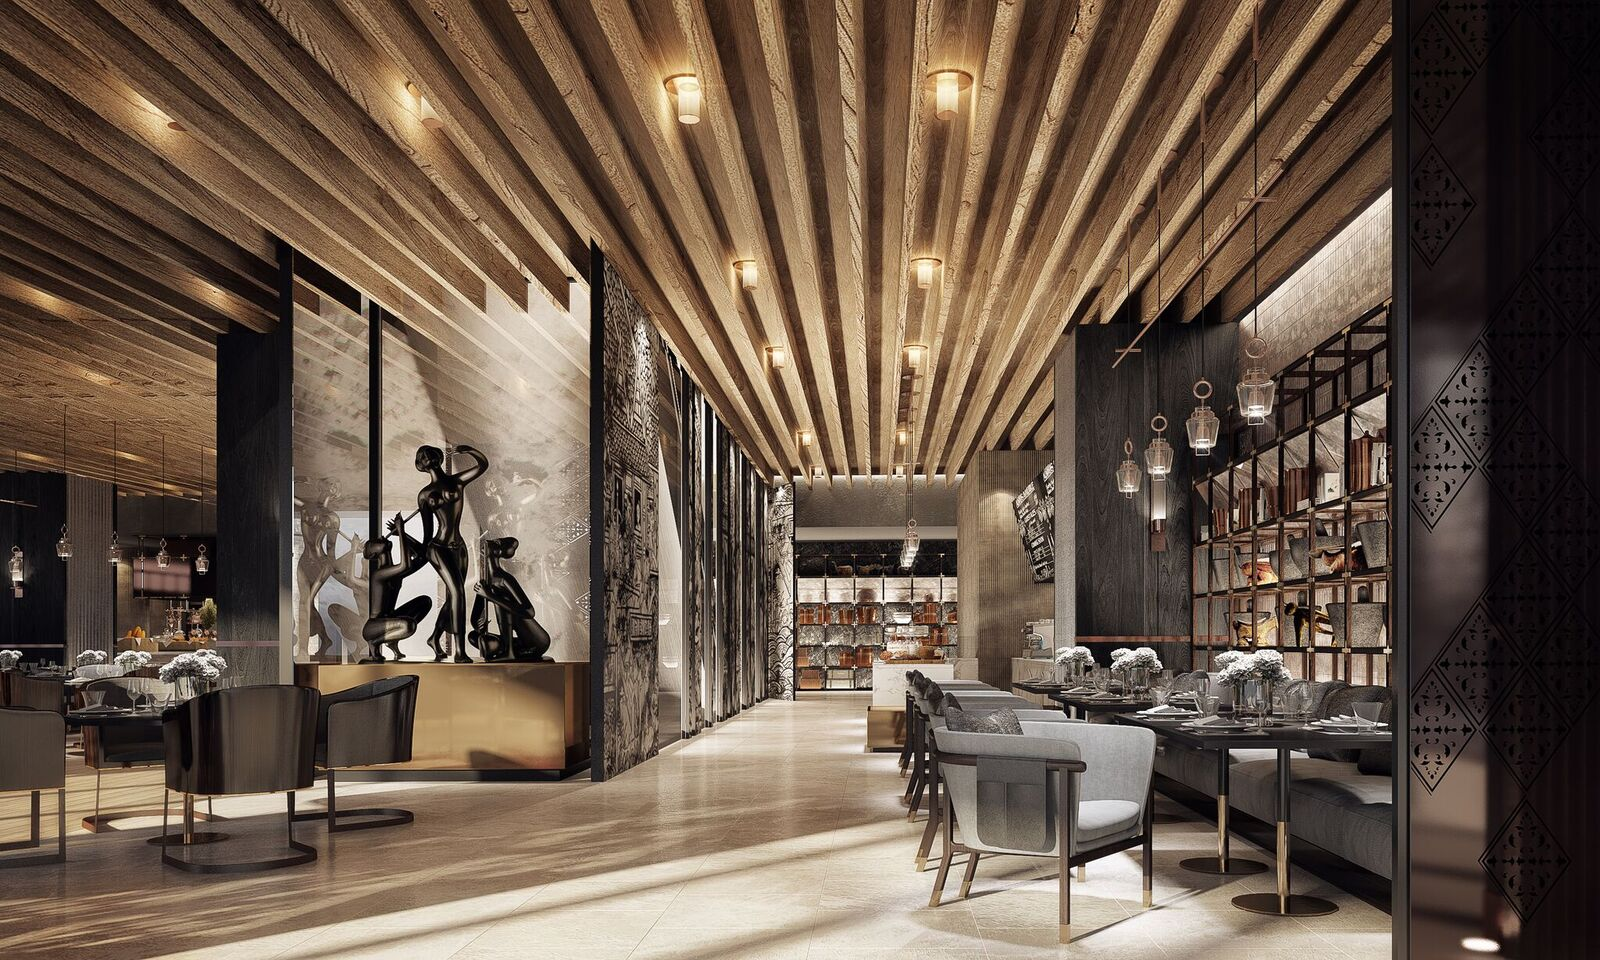 Hyatt Regency announces three new hotels to open in Asia Pacific by end 2018